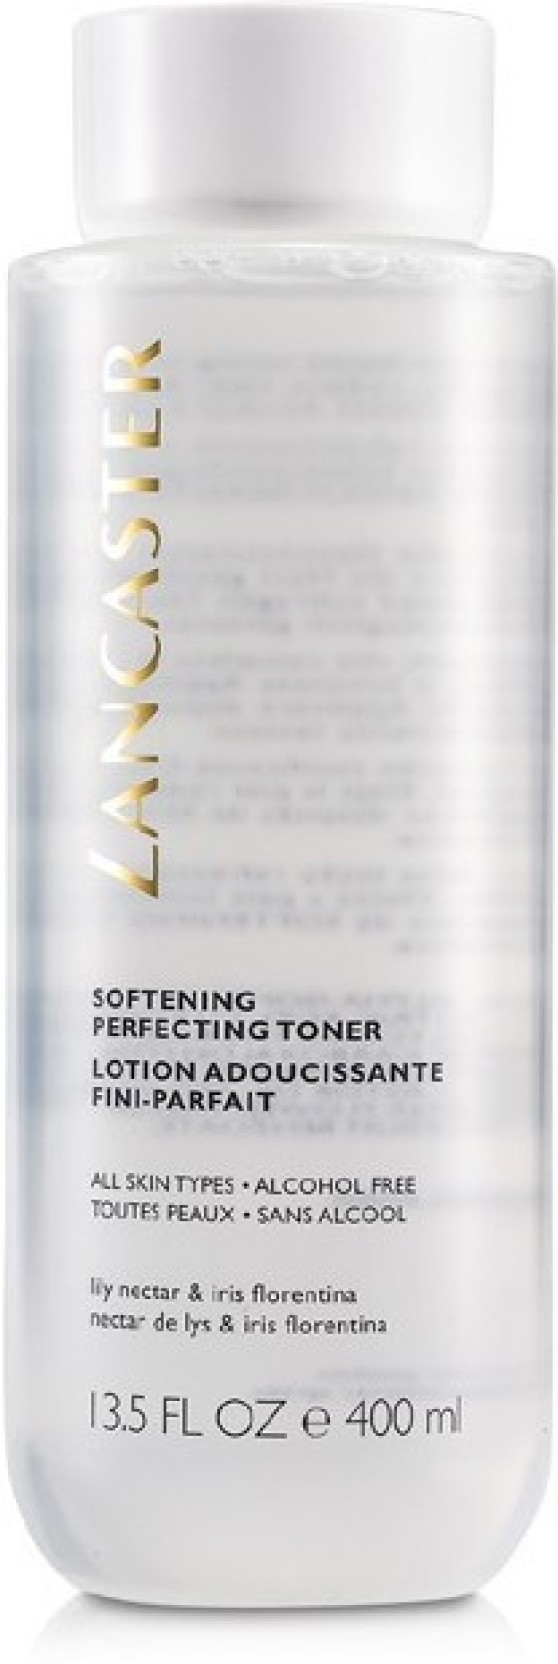 Lancaster - Softening Perfecting Toner Alcohol-Free - For All Skin Types -400ml/13oz Medix 5.5 Vitamin C Serum with Hyaluronic Acid, Ferulic Acid and Bulgarian Rose.  Anti-aging Serum for Wrinkles, Dark Spots, Skin Discoloration, and Dry Skin.  Large bottle with pump 2 Fl Oz (59 mL)